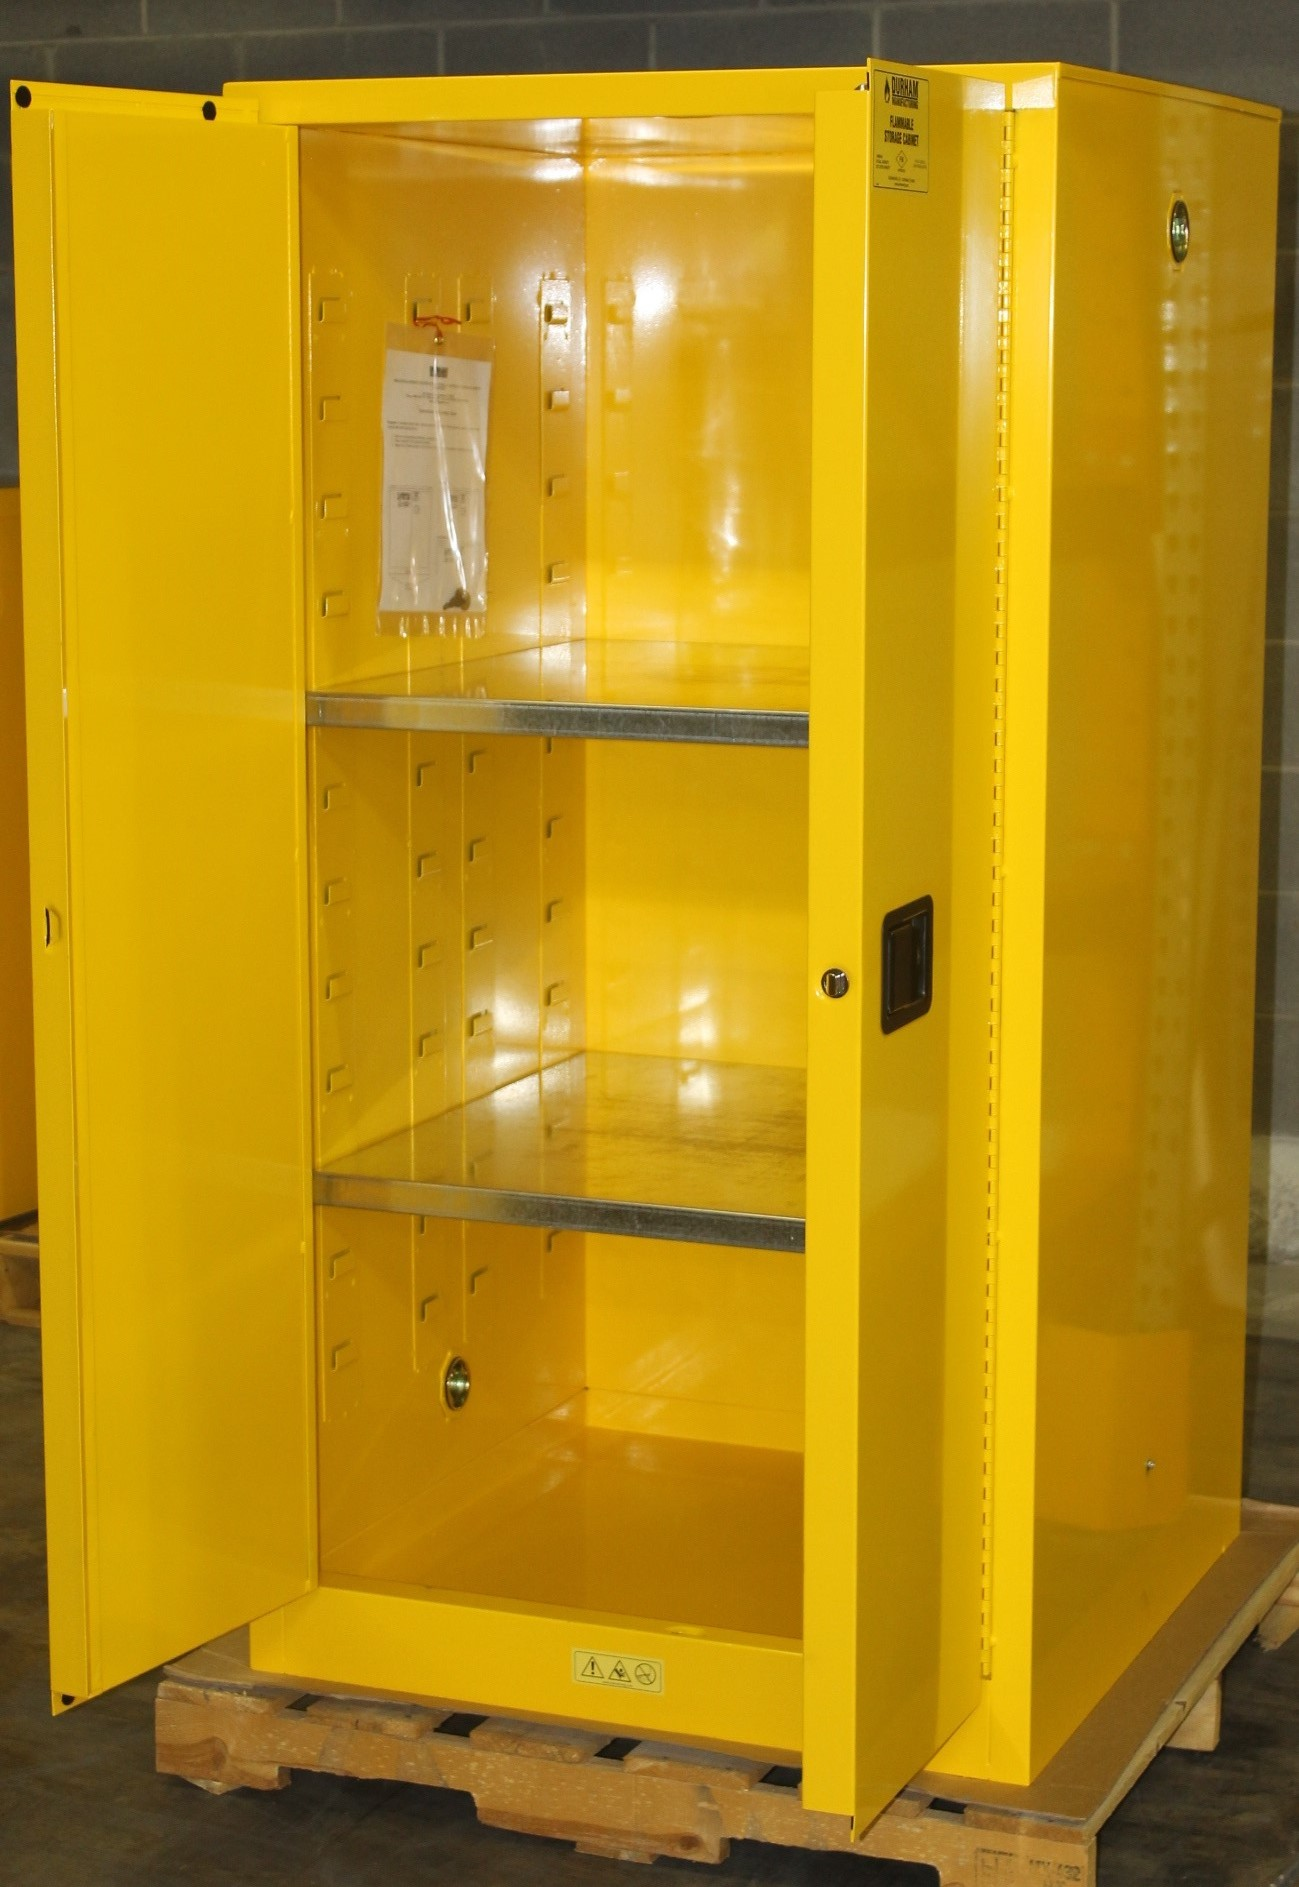 Lot 9 - 60 GALLONS FLAMMABLE SAFETY STORAGE CABINET, NEW